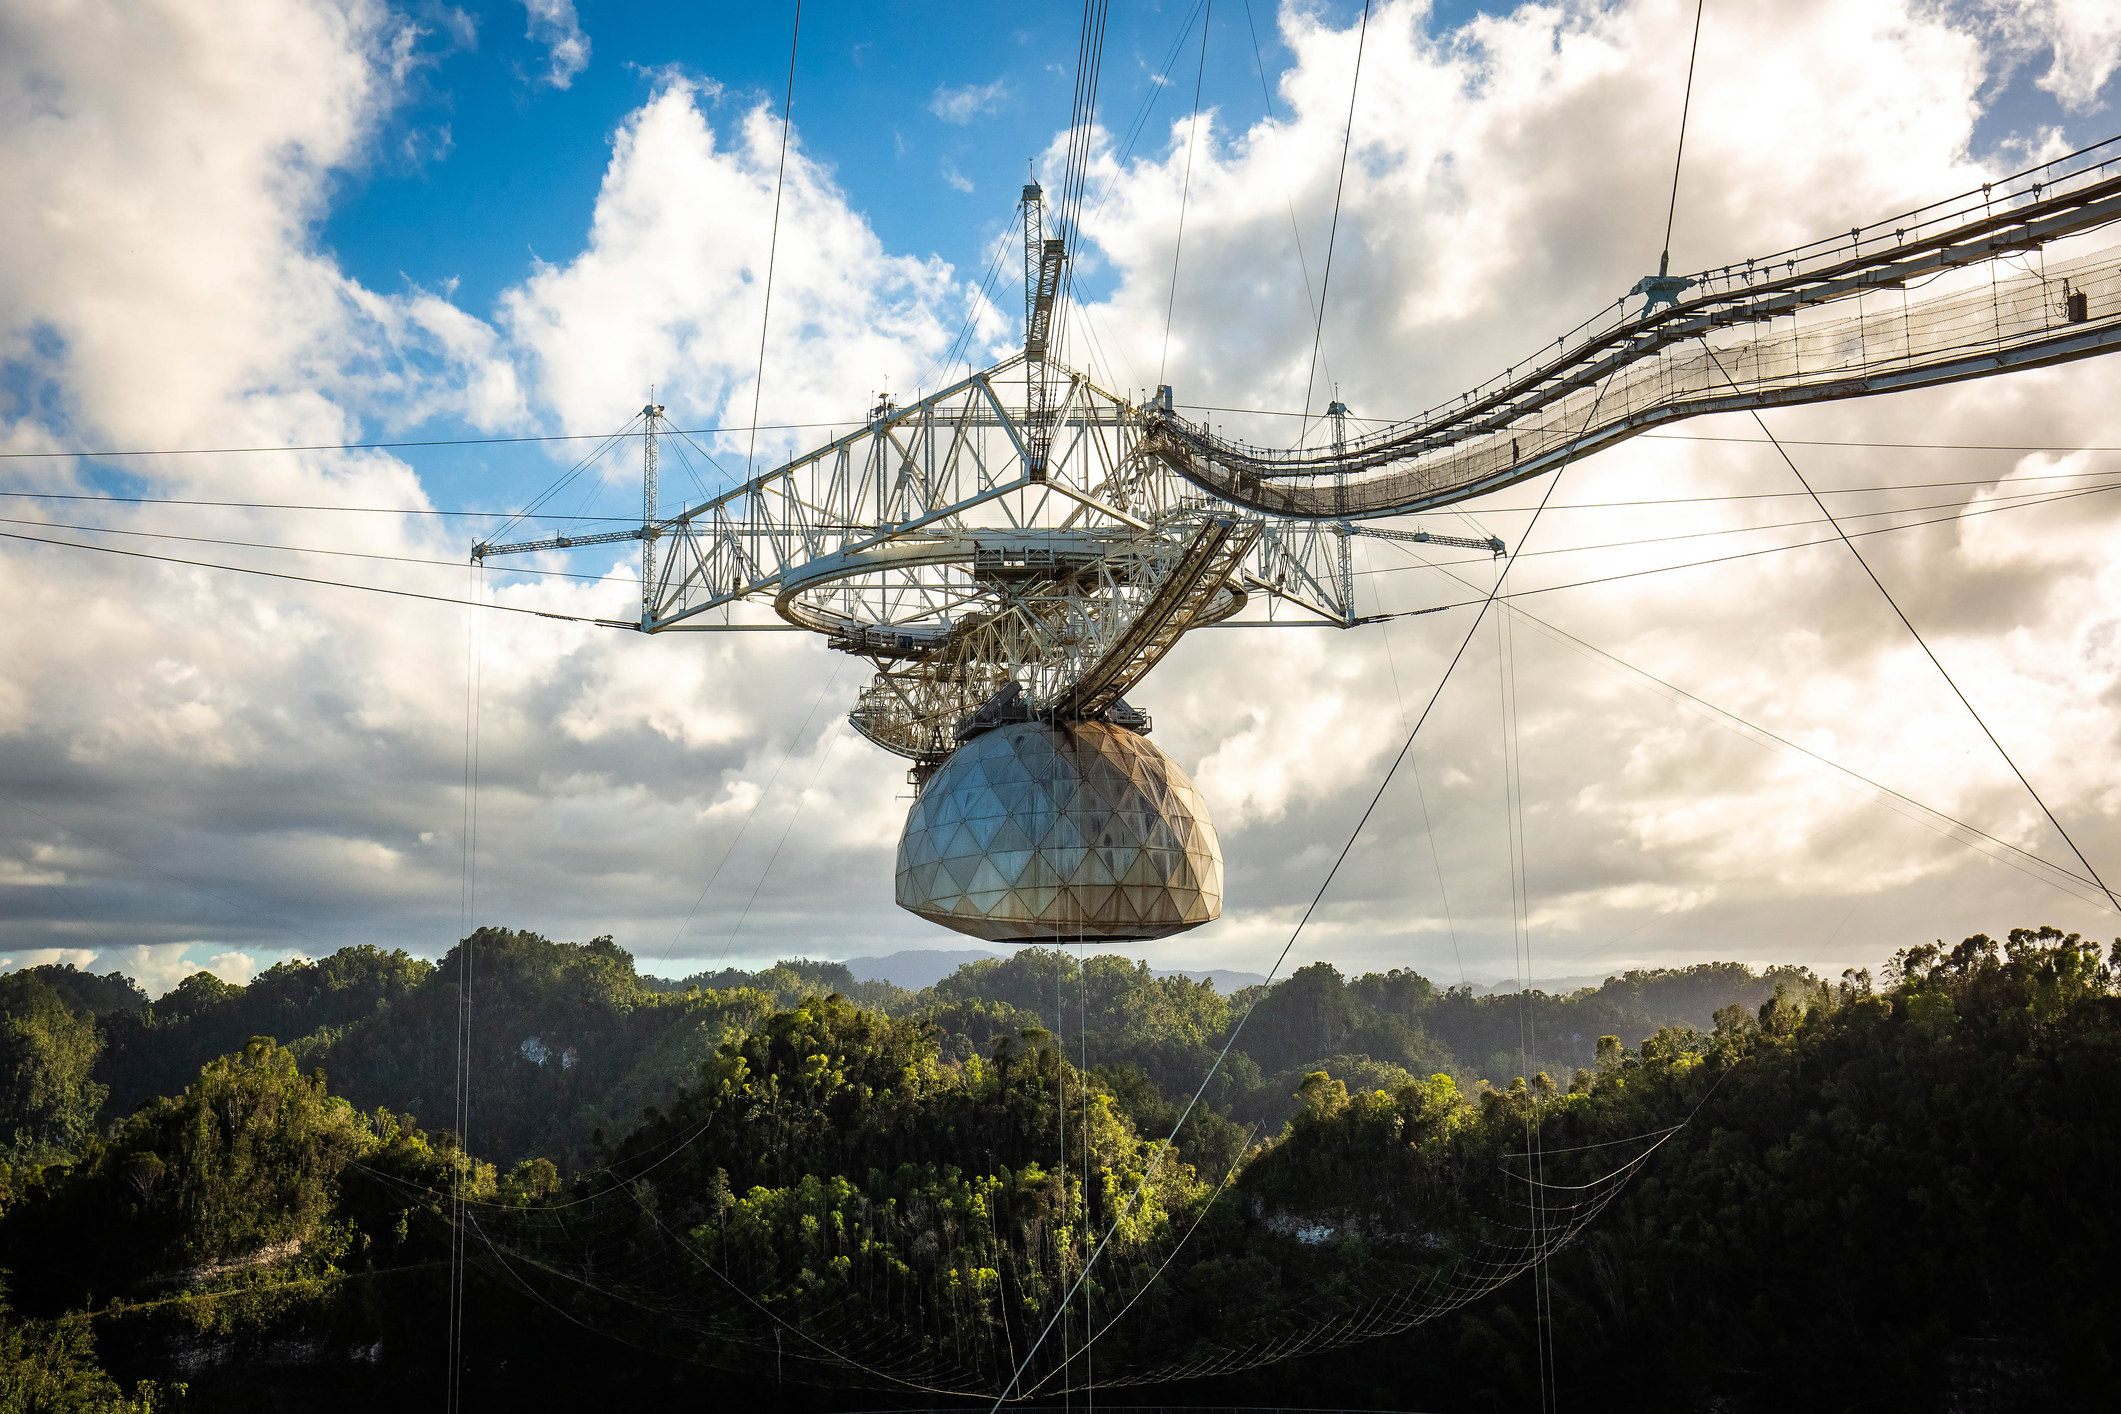 Puerto-Rico-Arecibo-Observatory.jpg?mtime=20190509184833#asset:105770